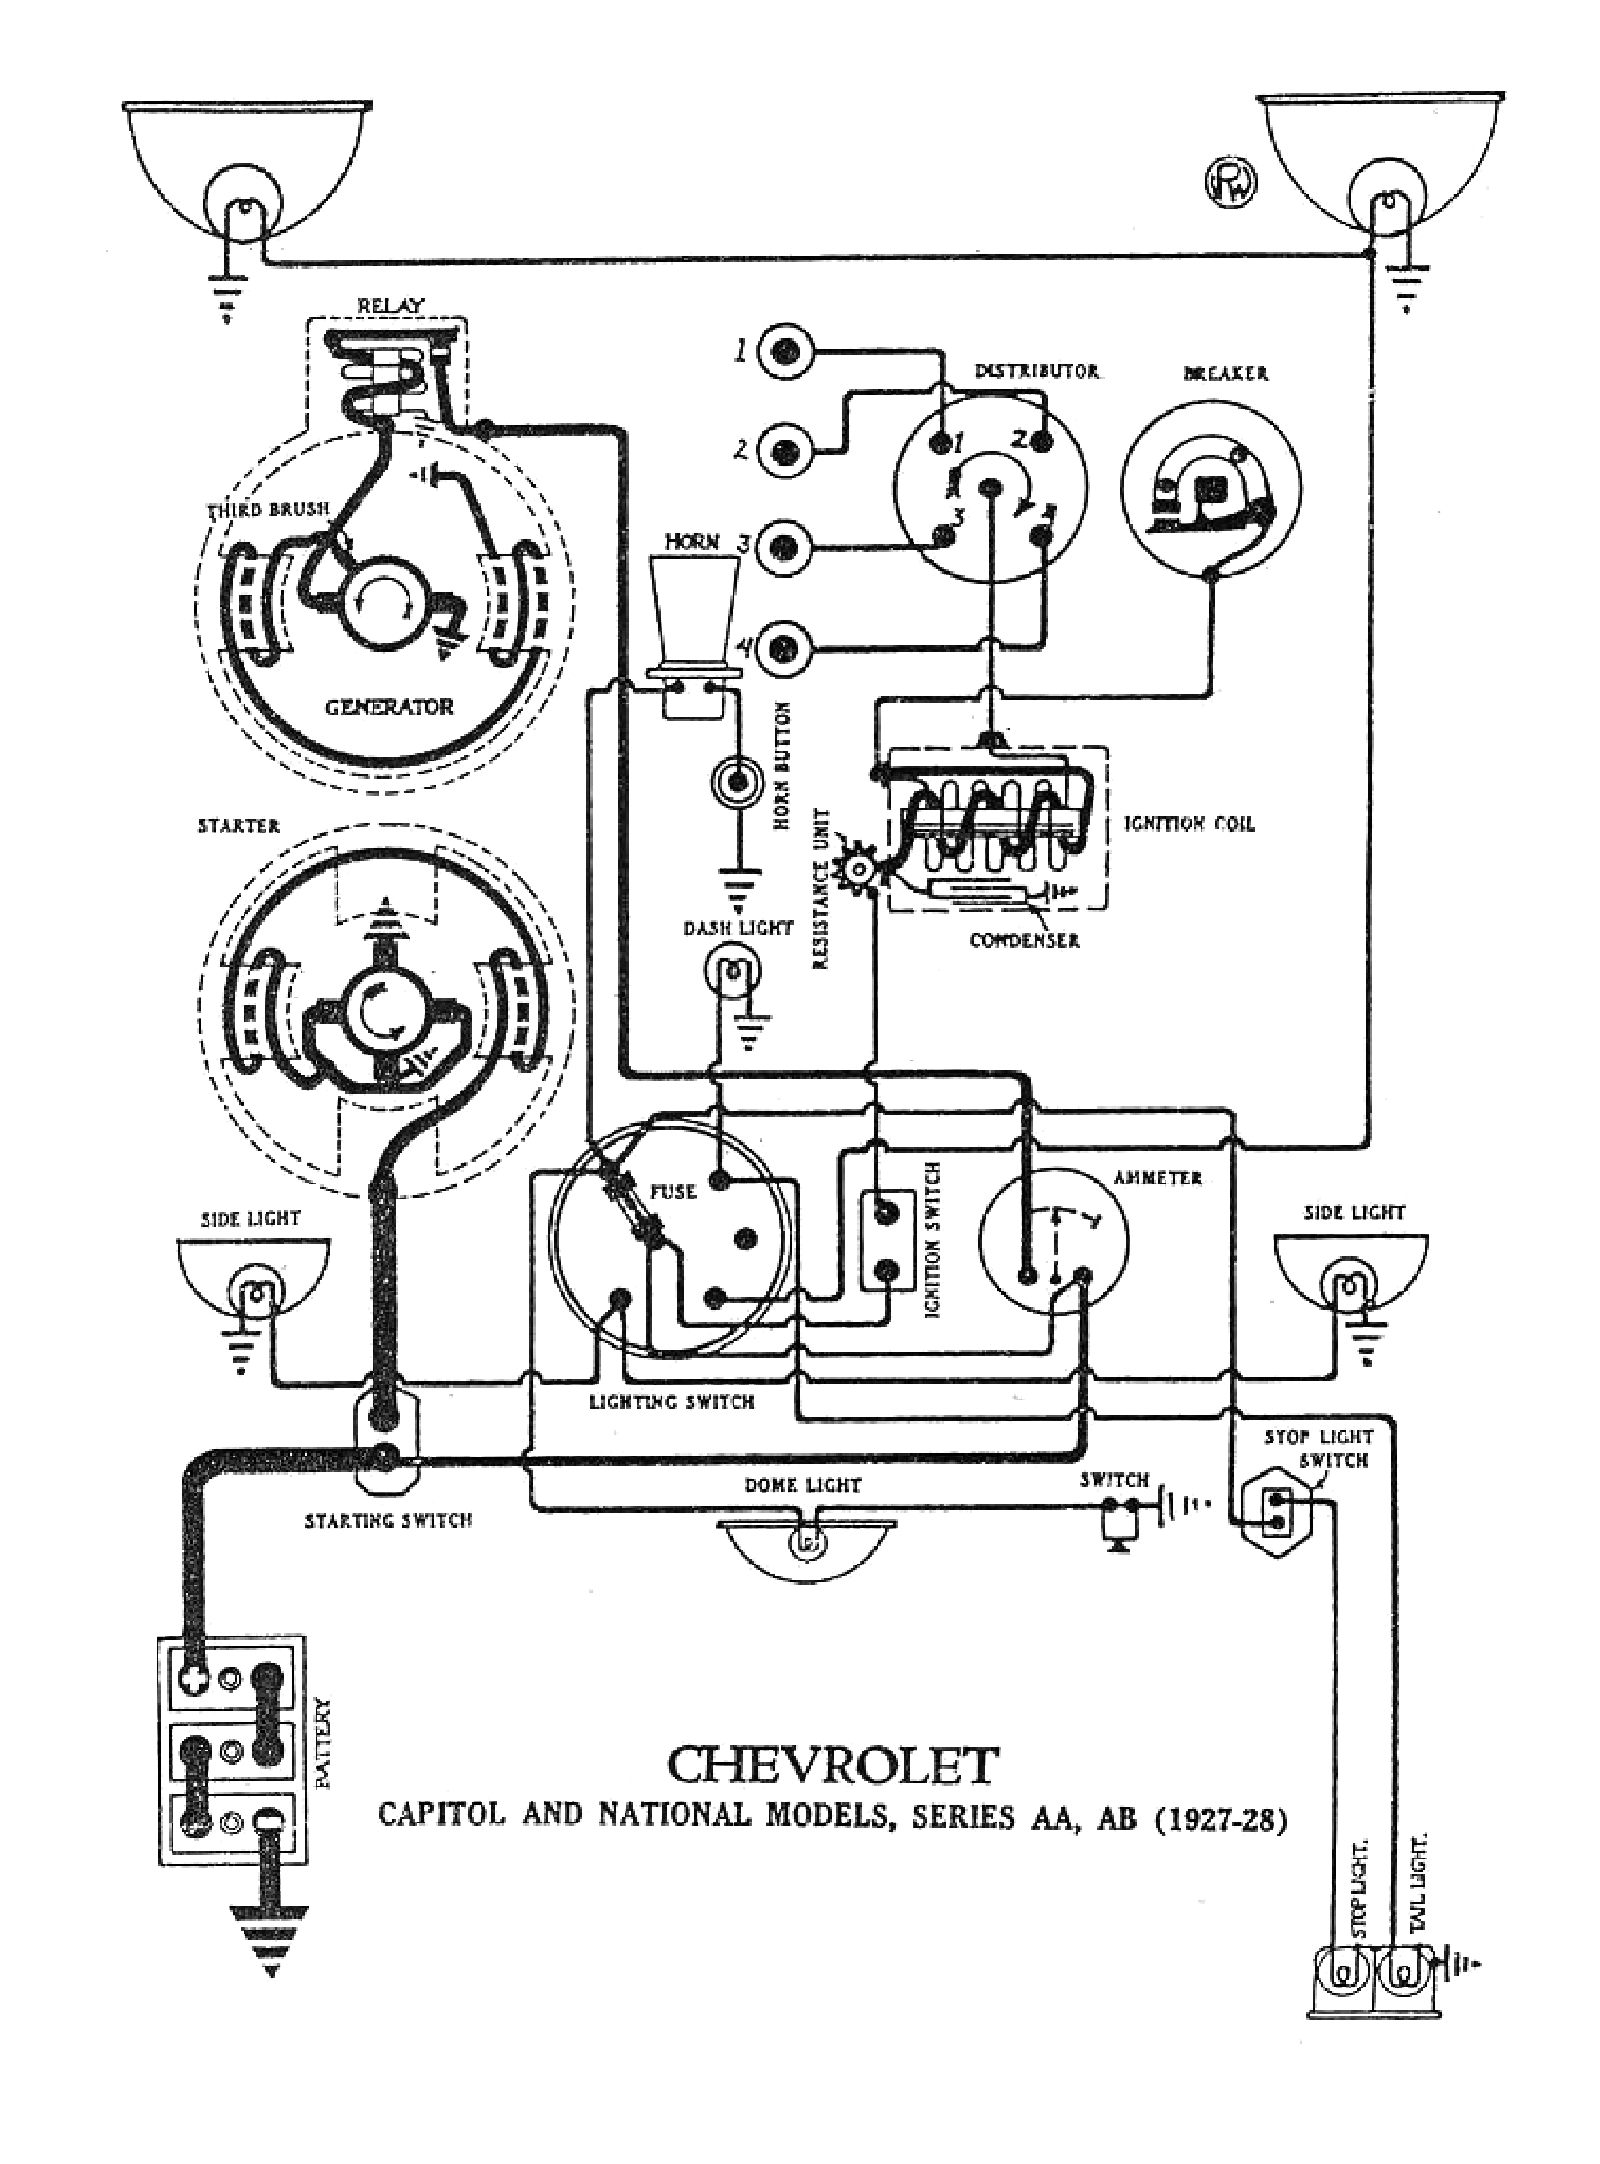 chevy wiring diagrams rh chevy oldcarmanualproject com Automotive Wiring System Diagram Reading Automotive Wiring Schematics